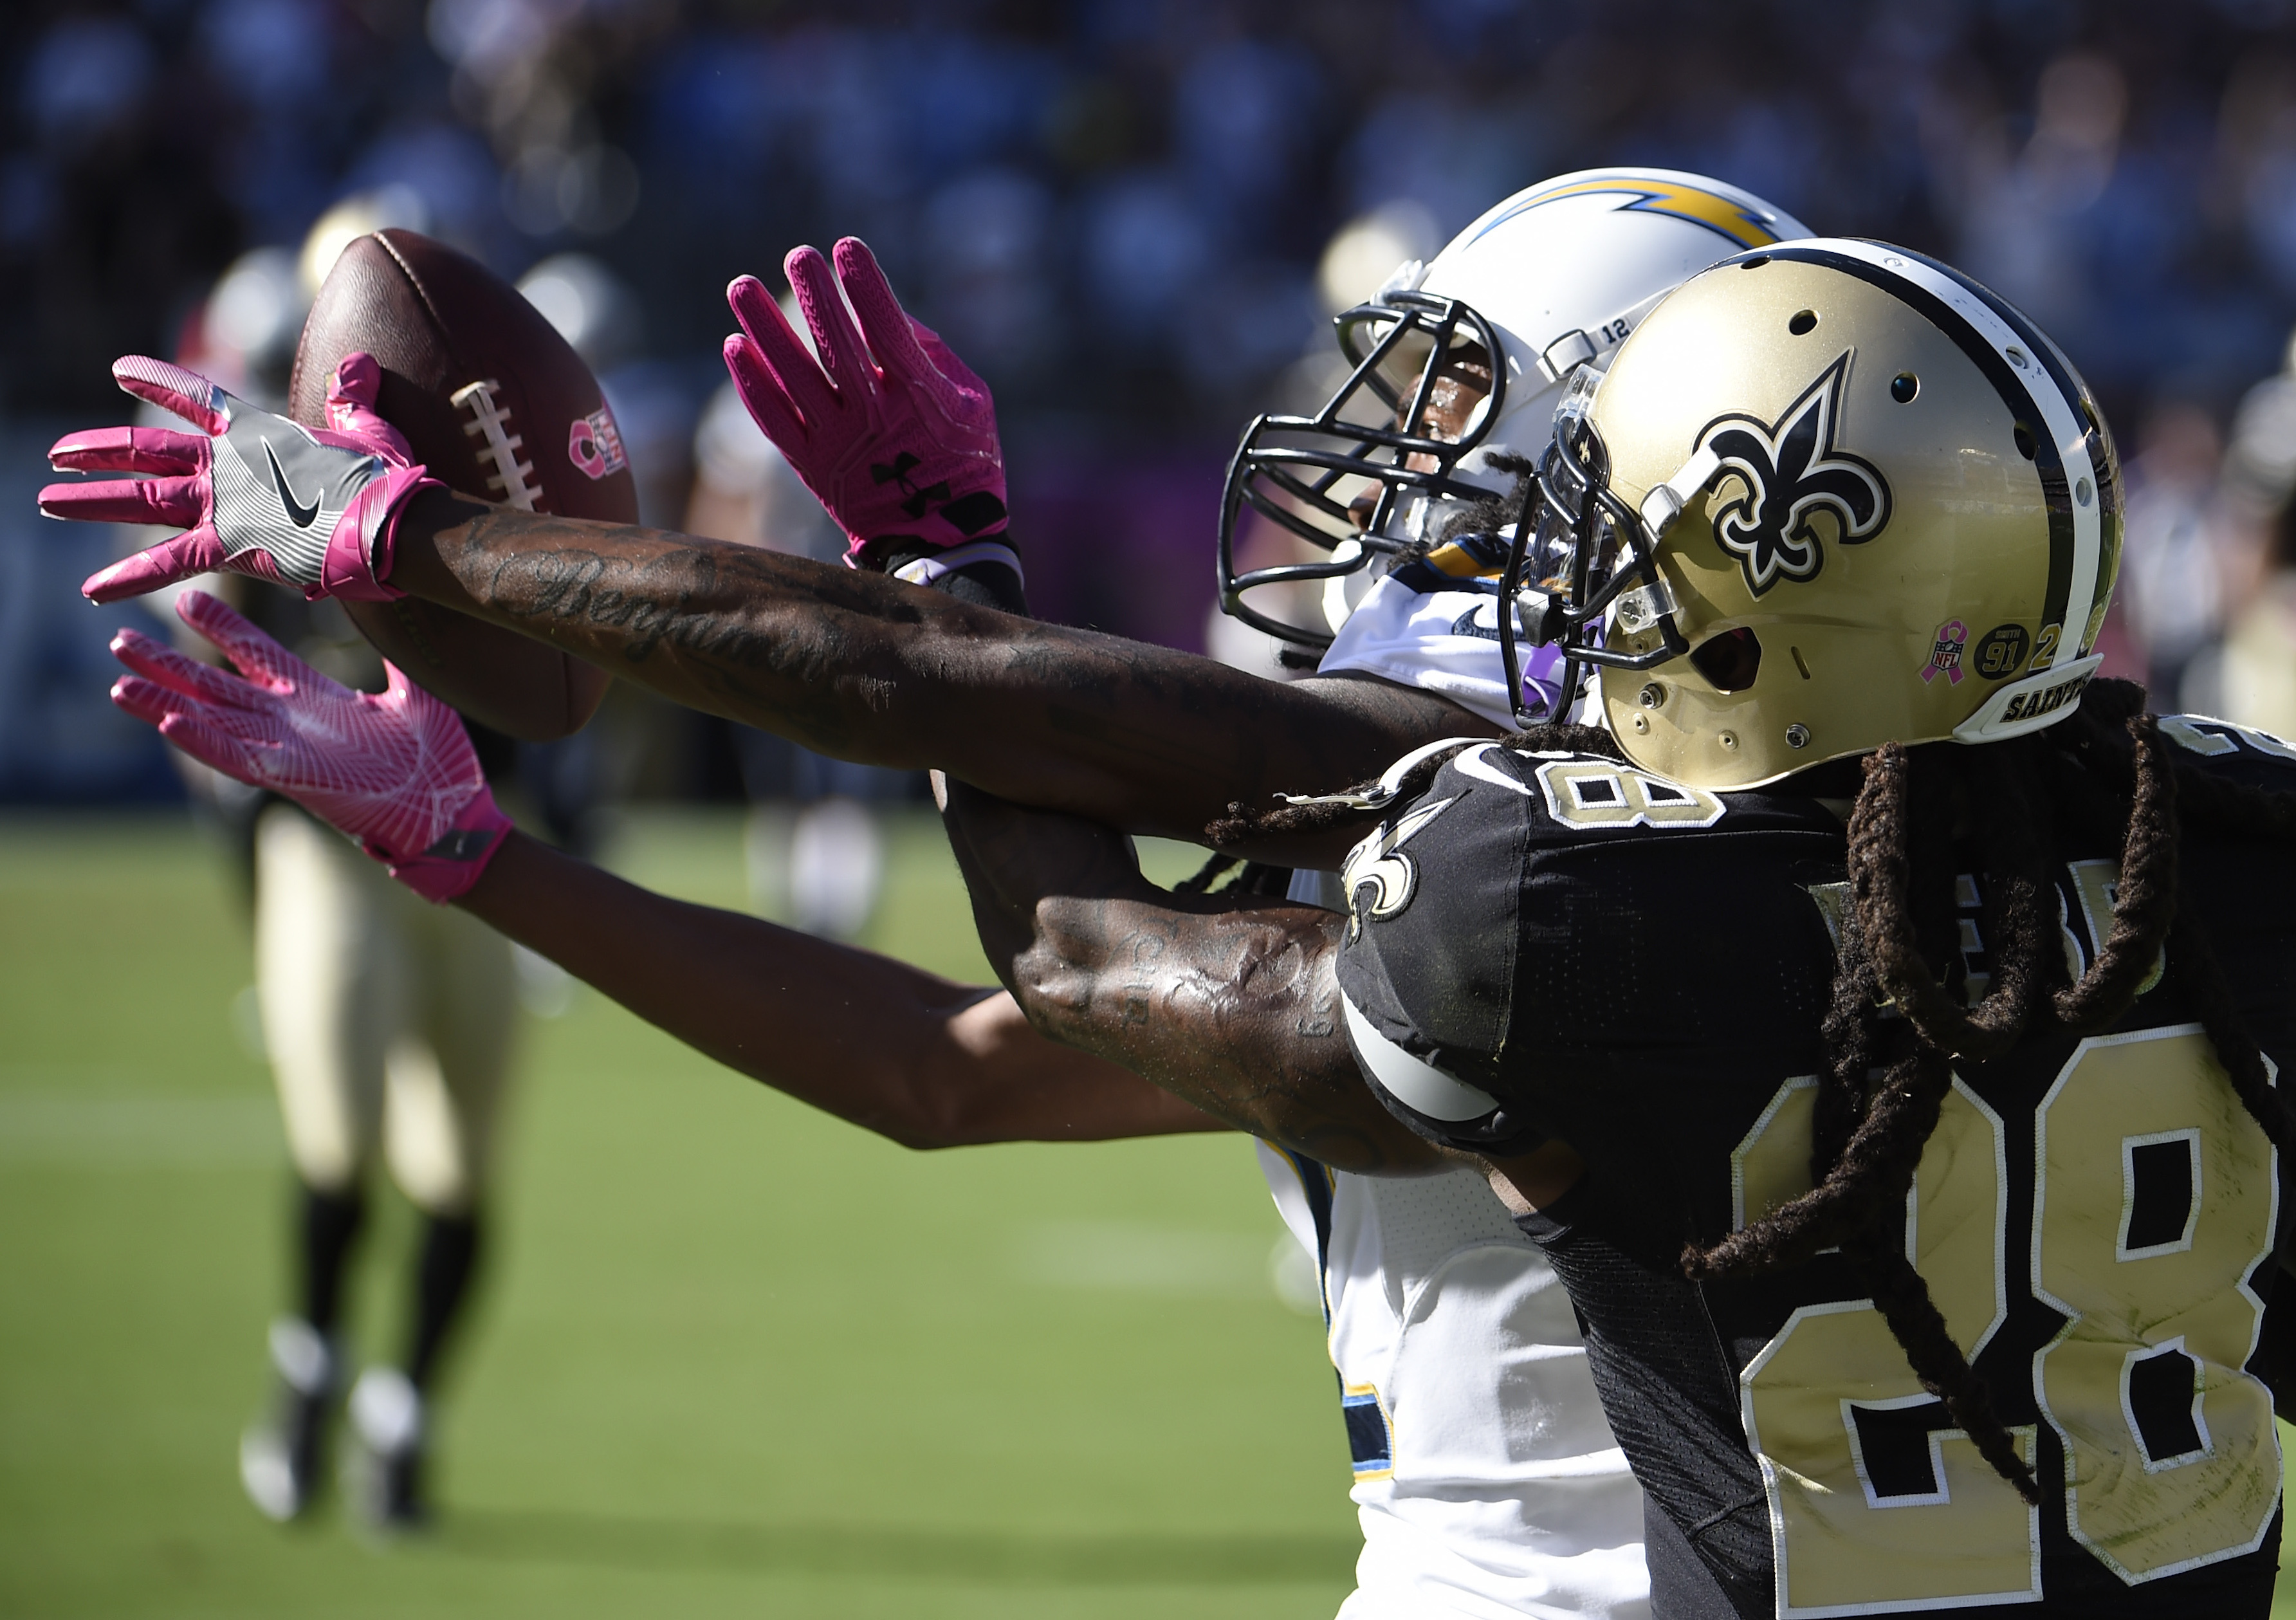 San Diego Chargers wide receiver Travis Benjamin, second from right, tries to haul in a reception as New Orleans Saints defensive back B.W. Webb (28) defends during the second half of an NFL football game, Sunday, Oct. 2, 2016, in San Diego. (AP Photo/Len